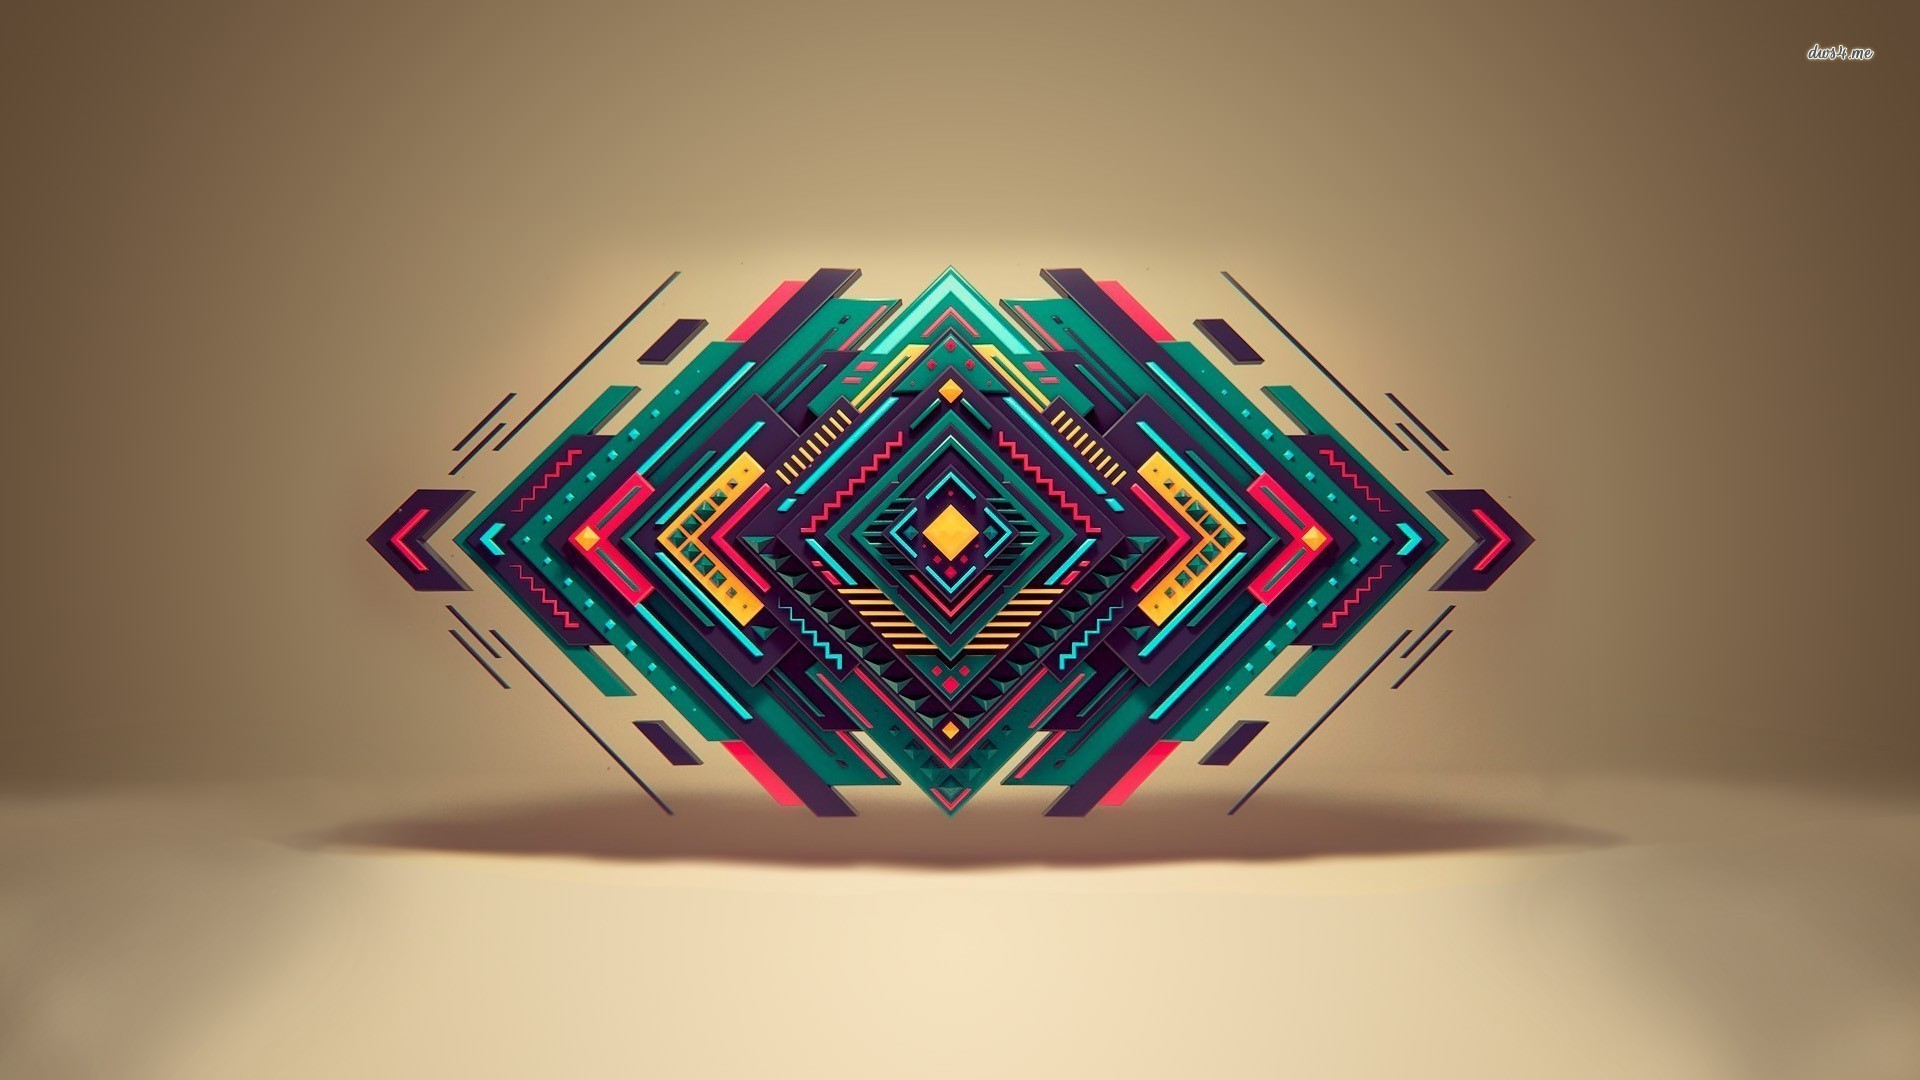 Res: 1920x1080, Geometric iPhone 4s Wallpapers iPhone Wallpapers - HD Wallpapers